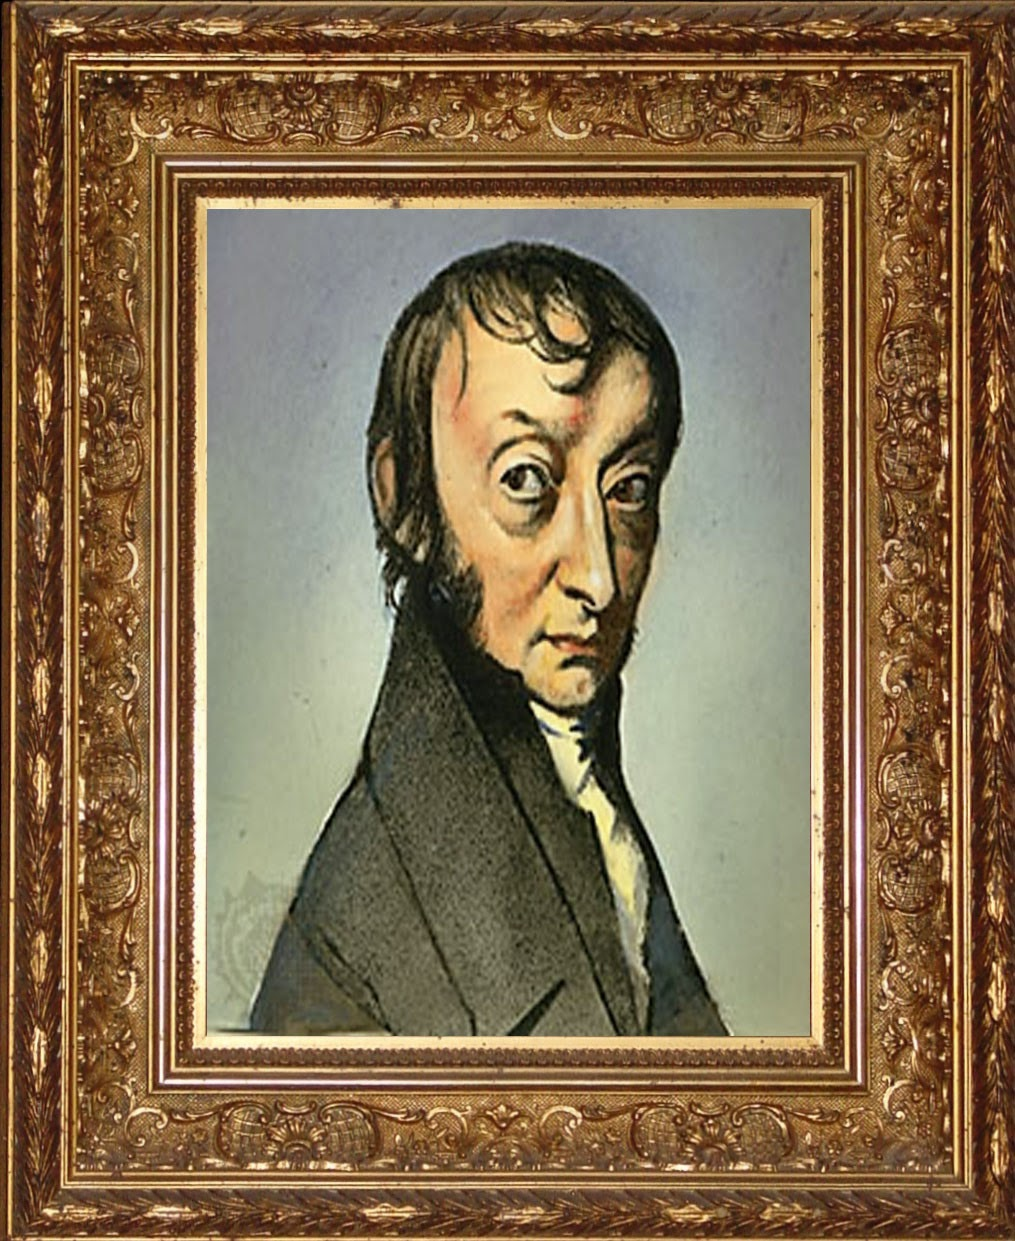 amedeo avogadro This year marks the 150th anniversary of the death of the italian chemical physicist, amedeo avogadro.